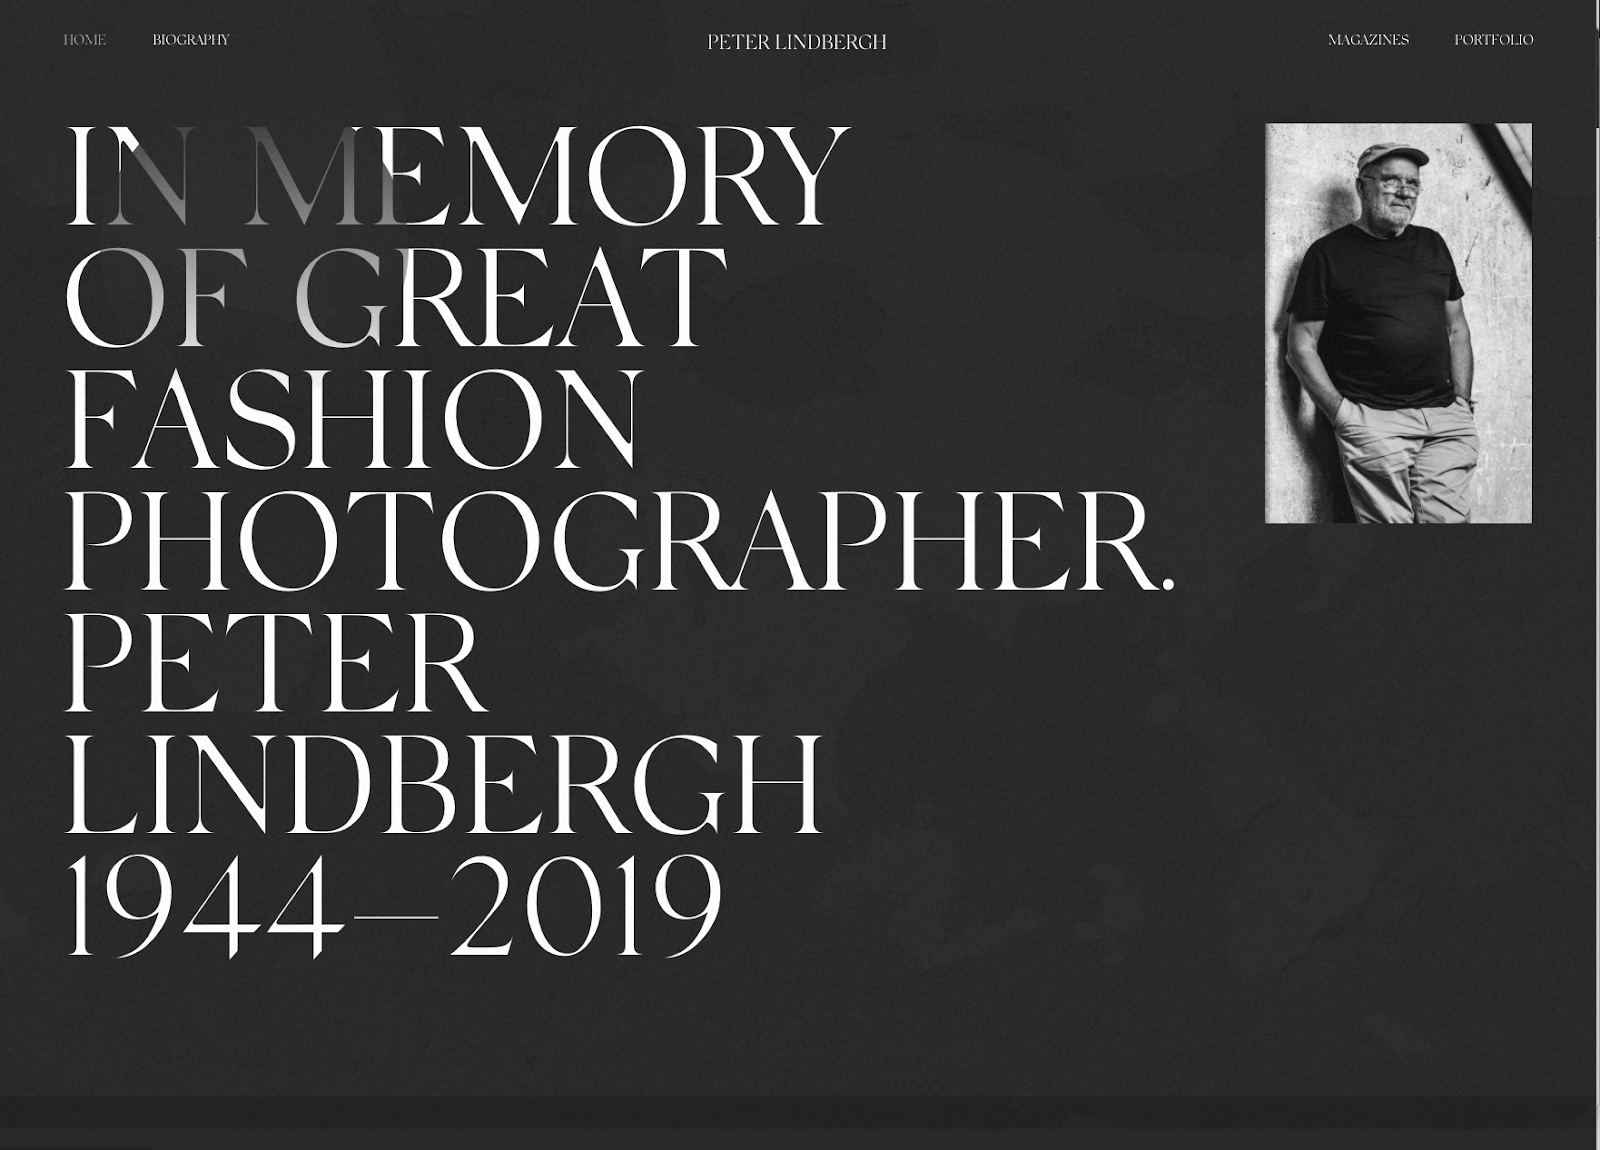 A beautiful tribute to late fashion photographer Peter Lindberg uses dark mode and a simple black and white photo of the photographer.